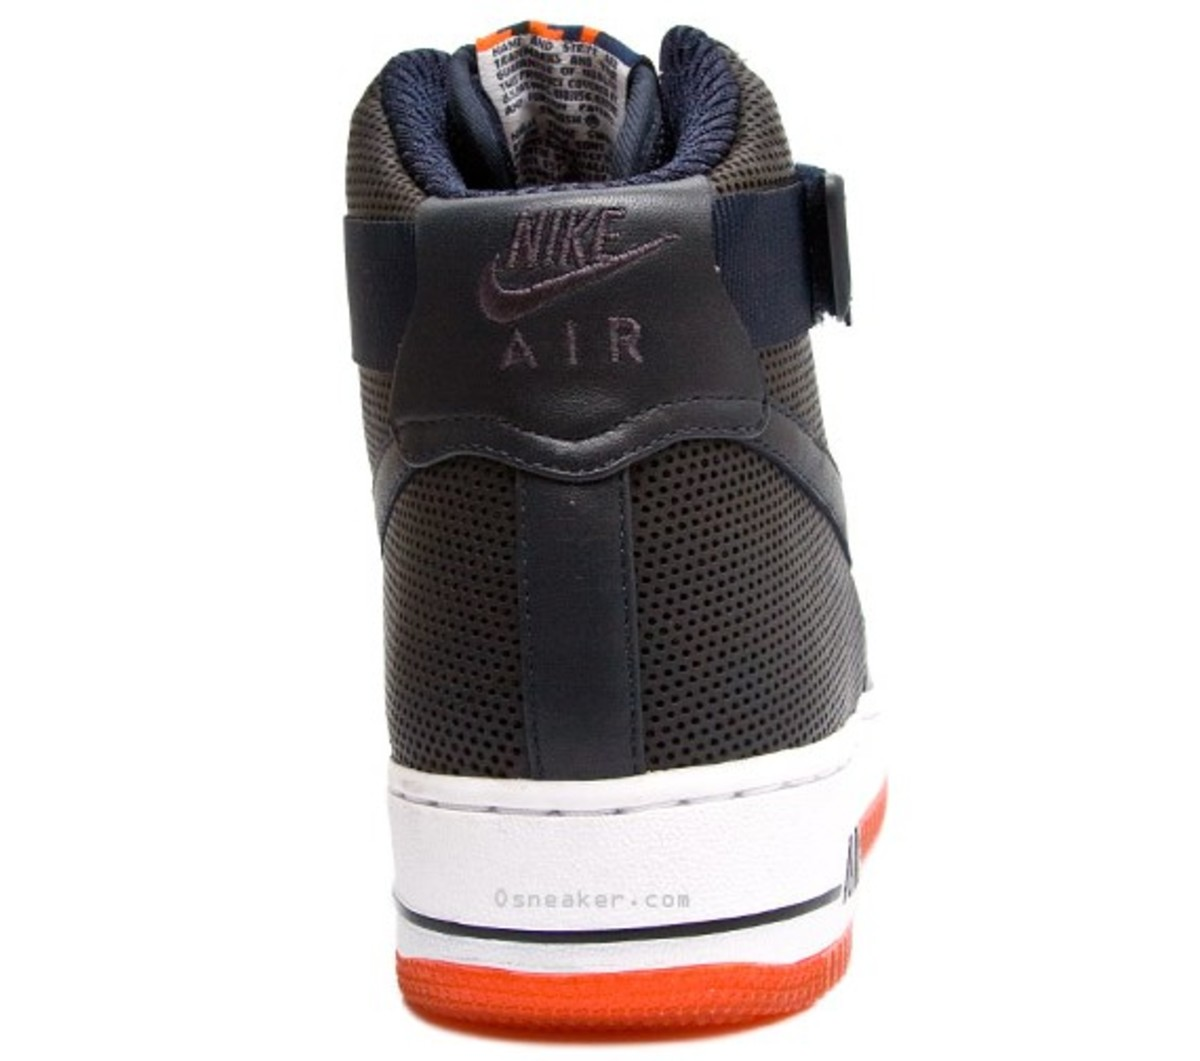 nike-x-futura-air-force-1-high-premium-navy-4